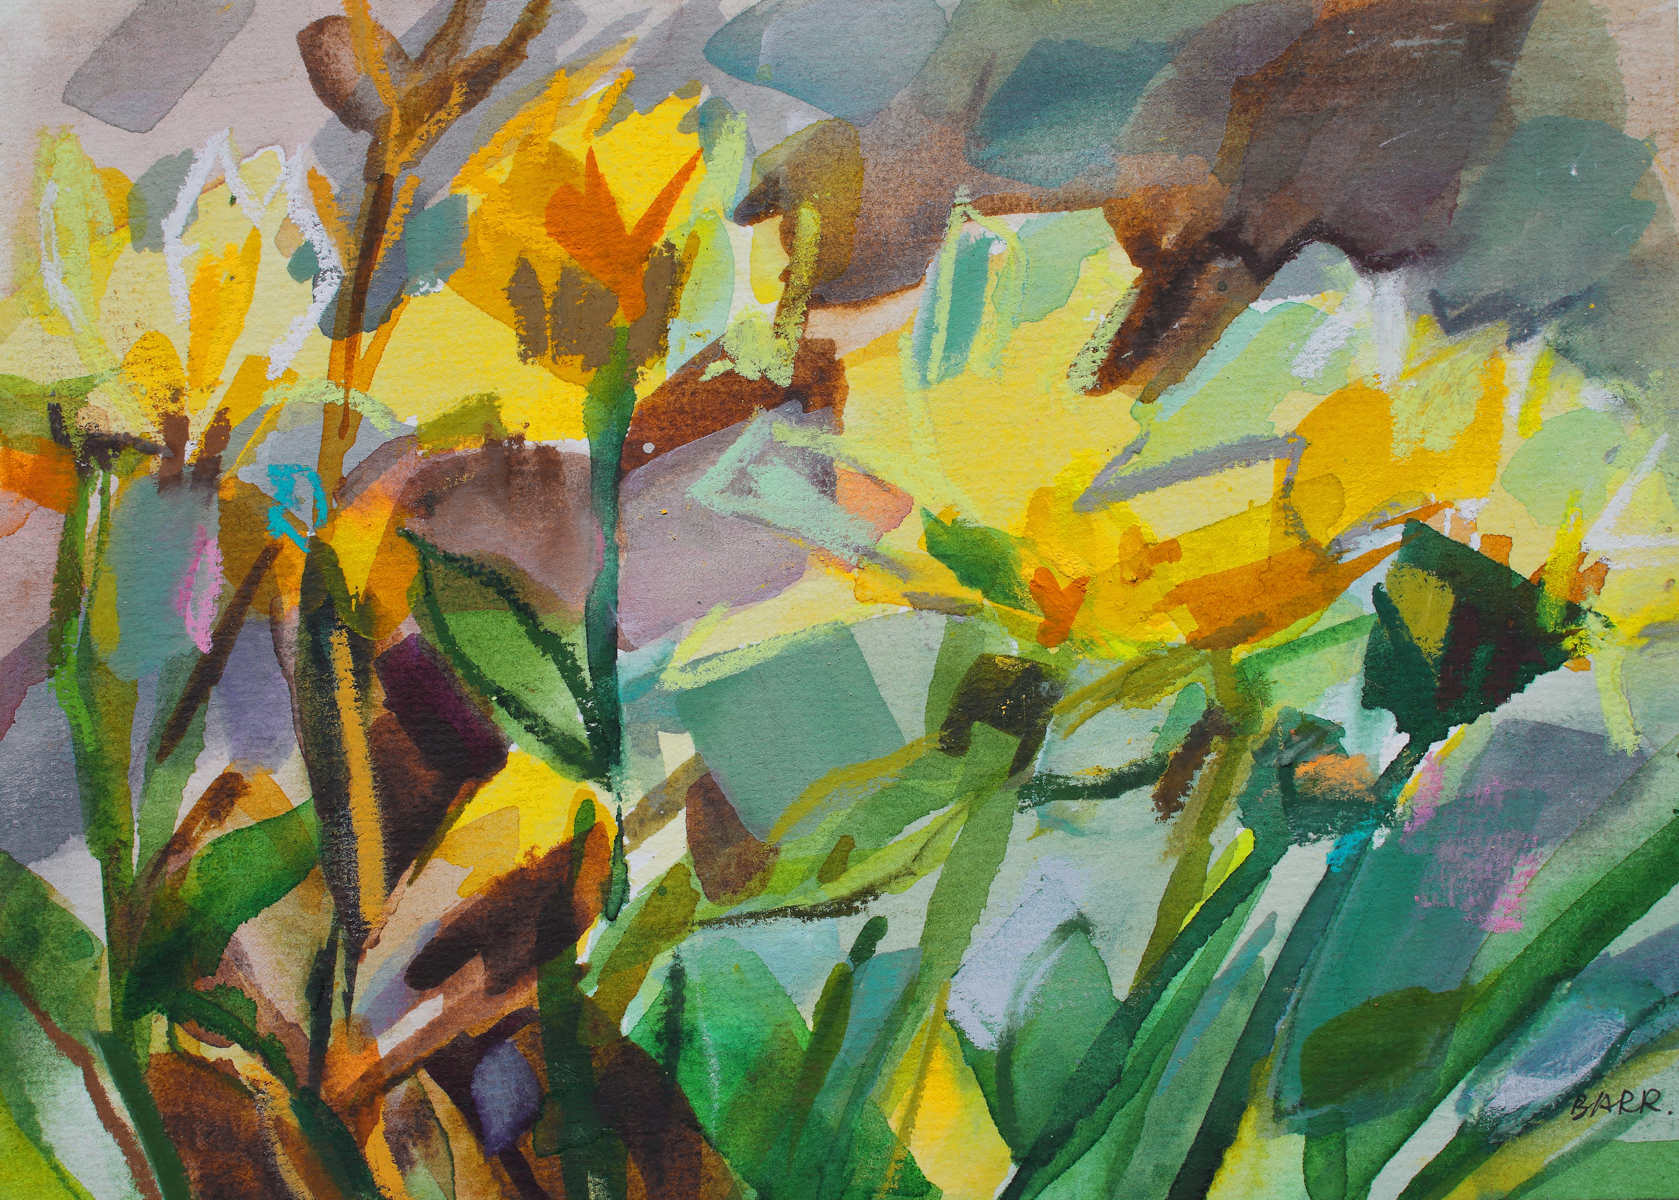 Watercolour titled Laura's Flowers by Shona Barr